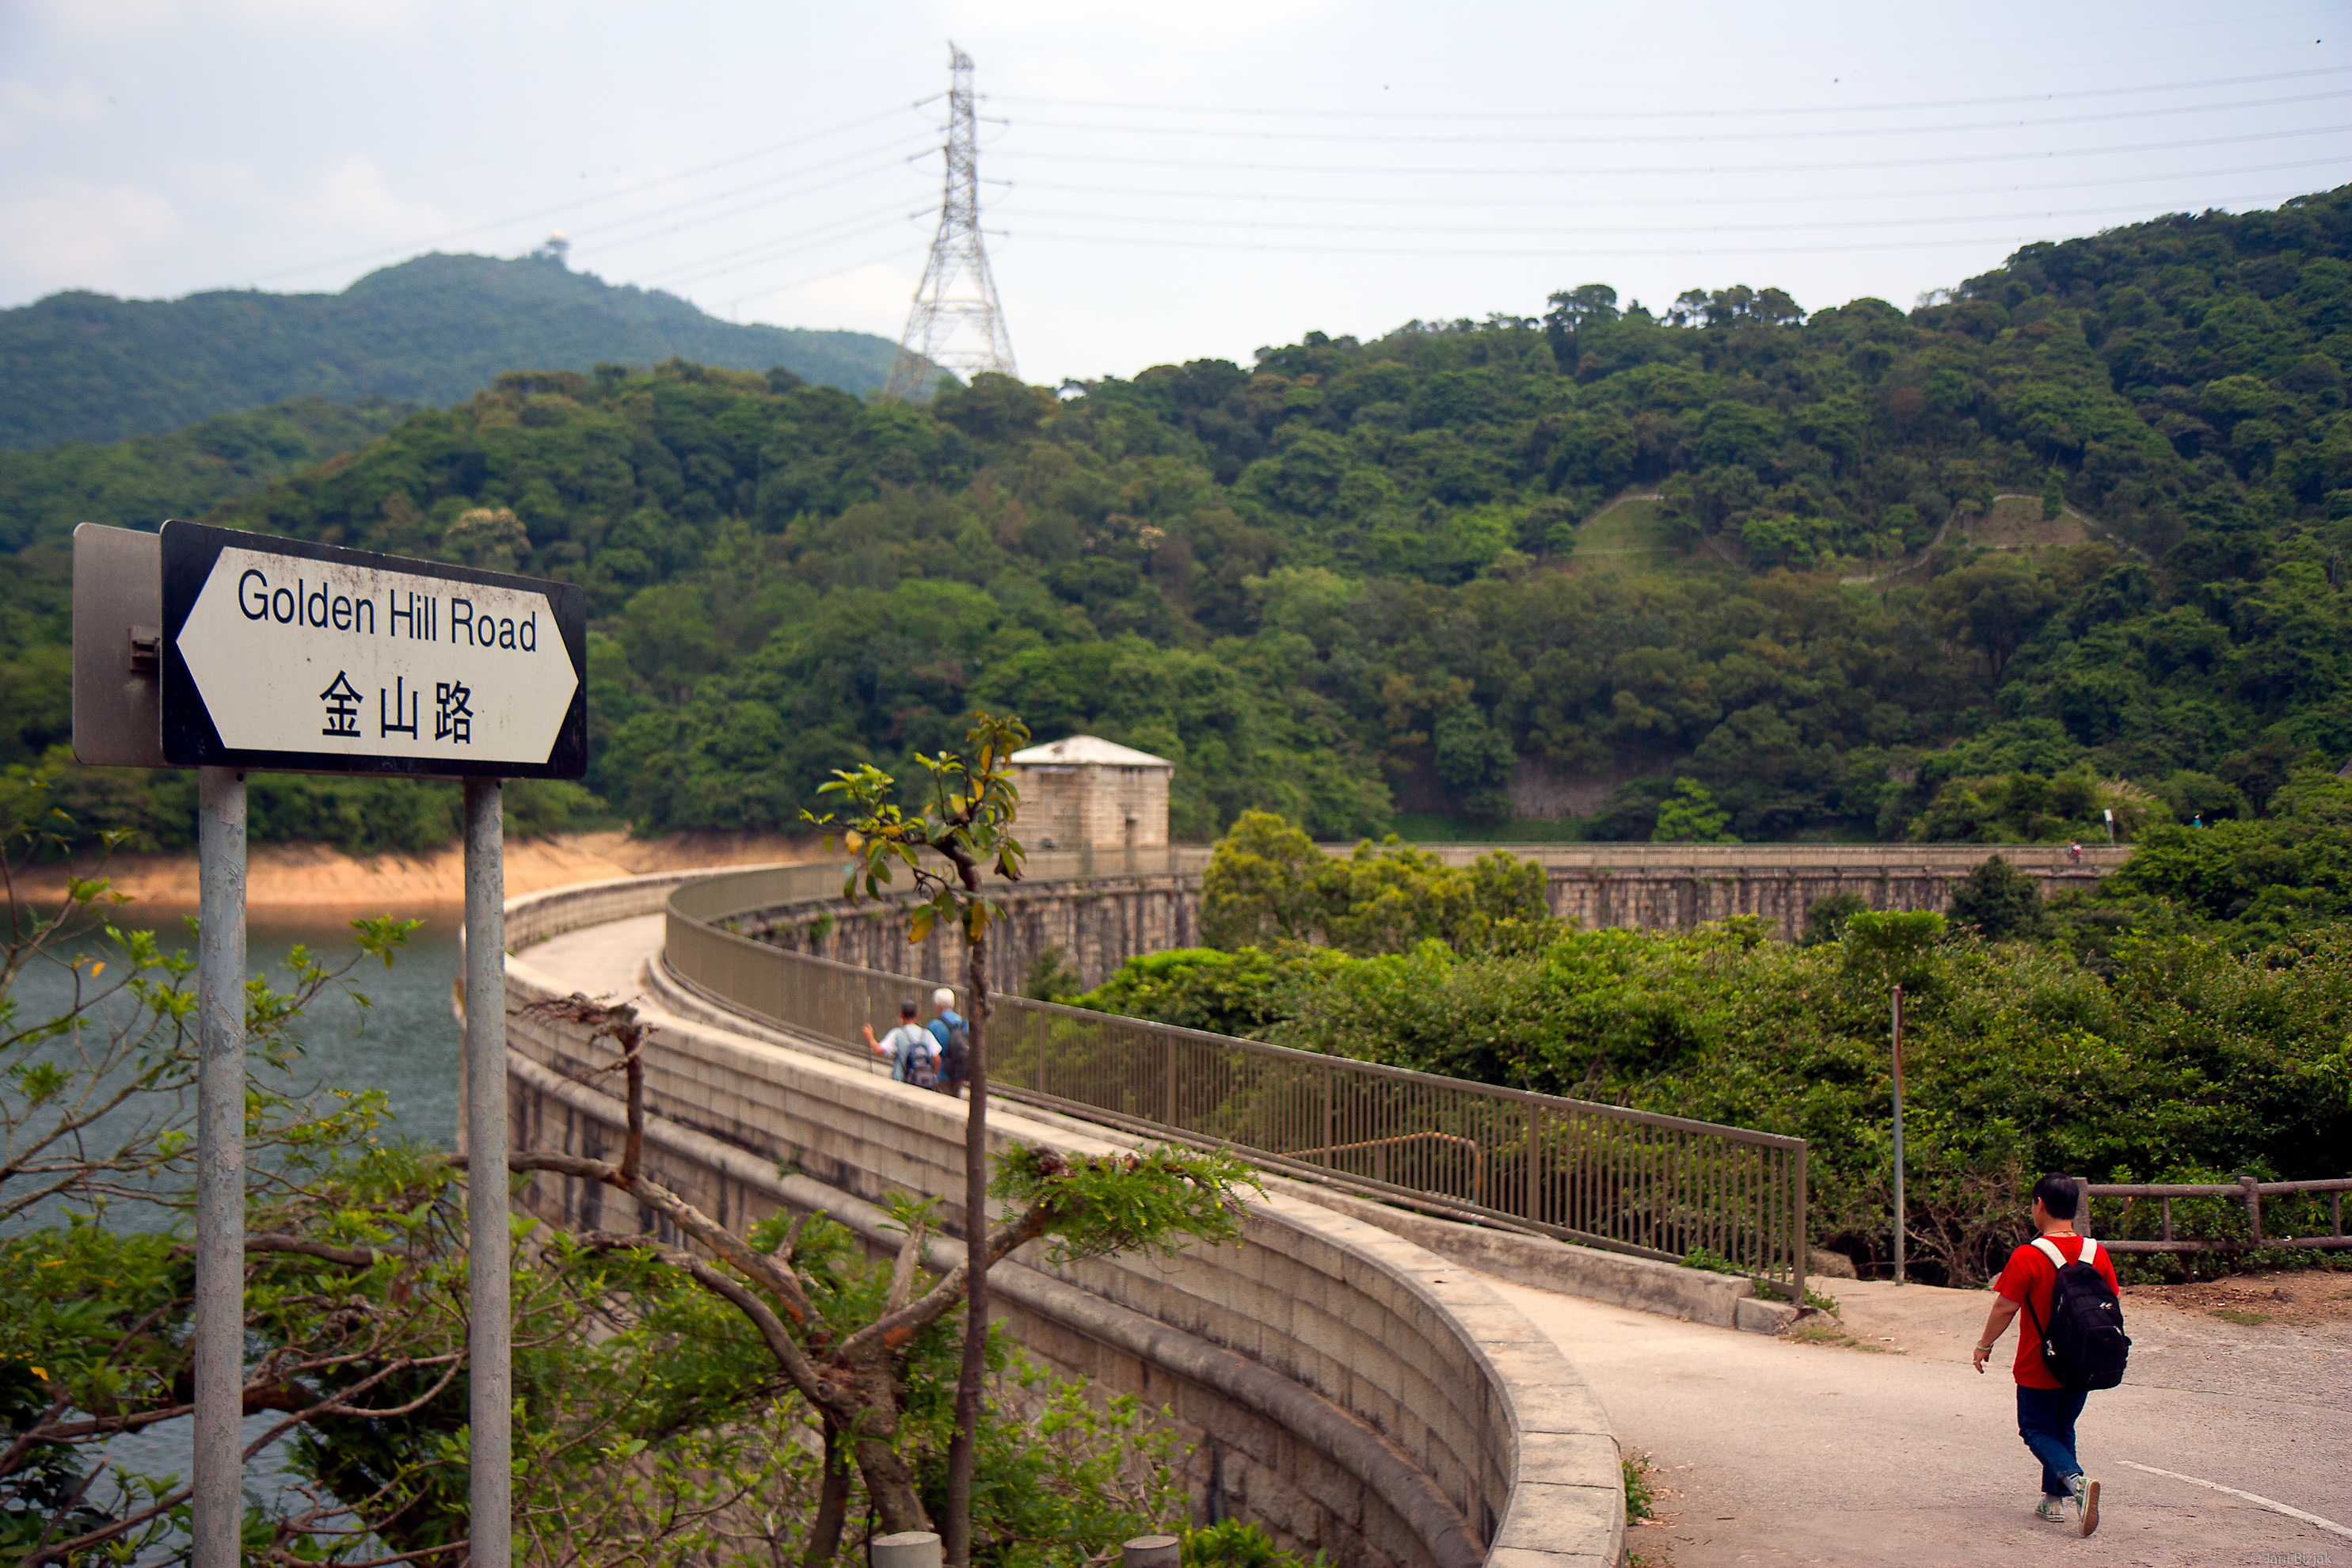 One of the dams in the area of the Monkey.